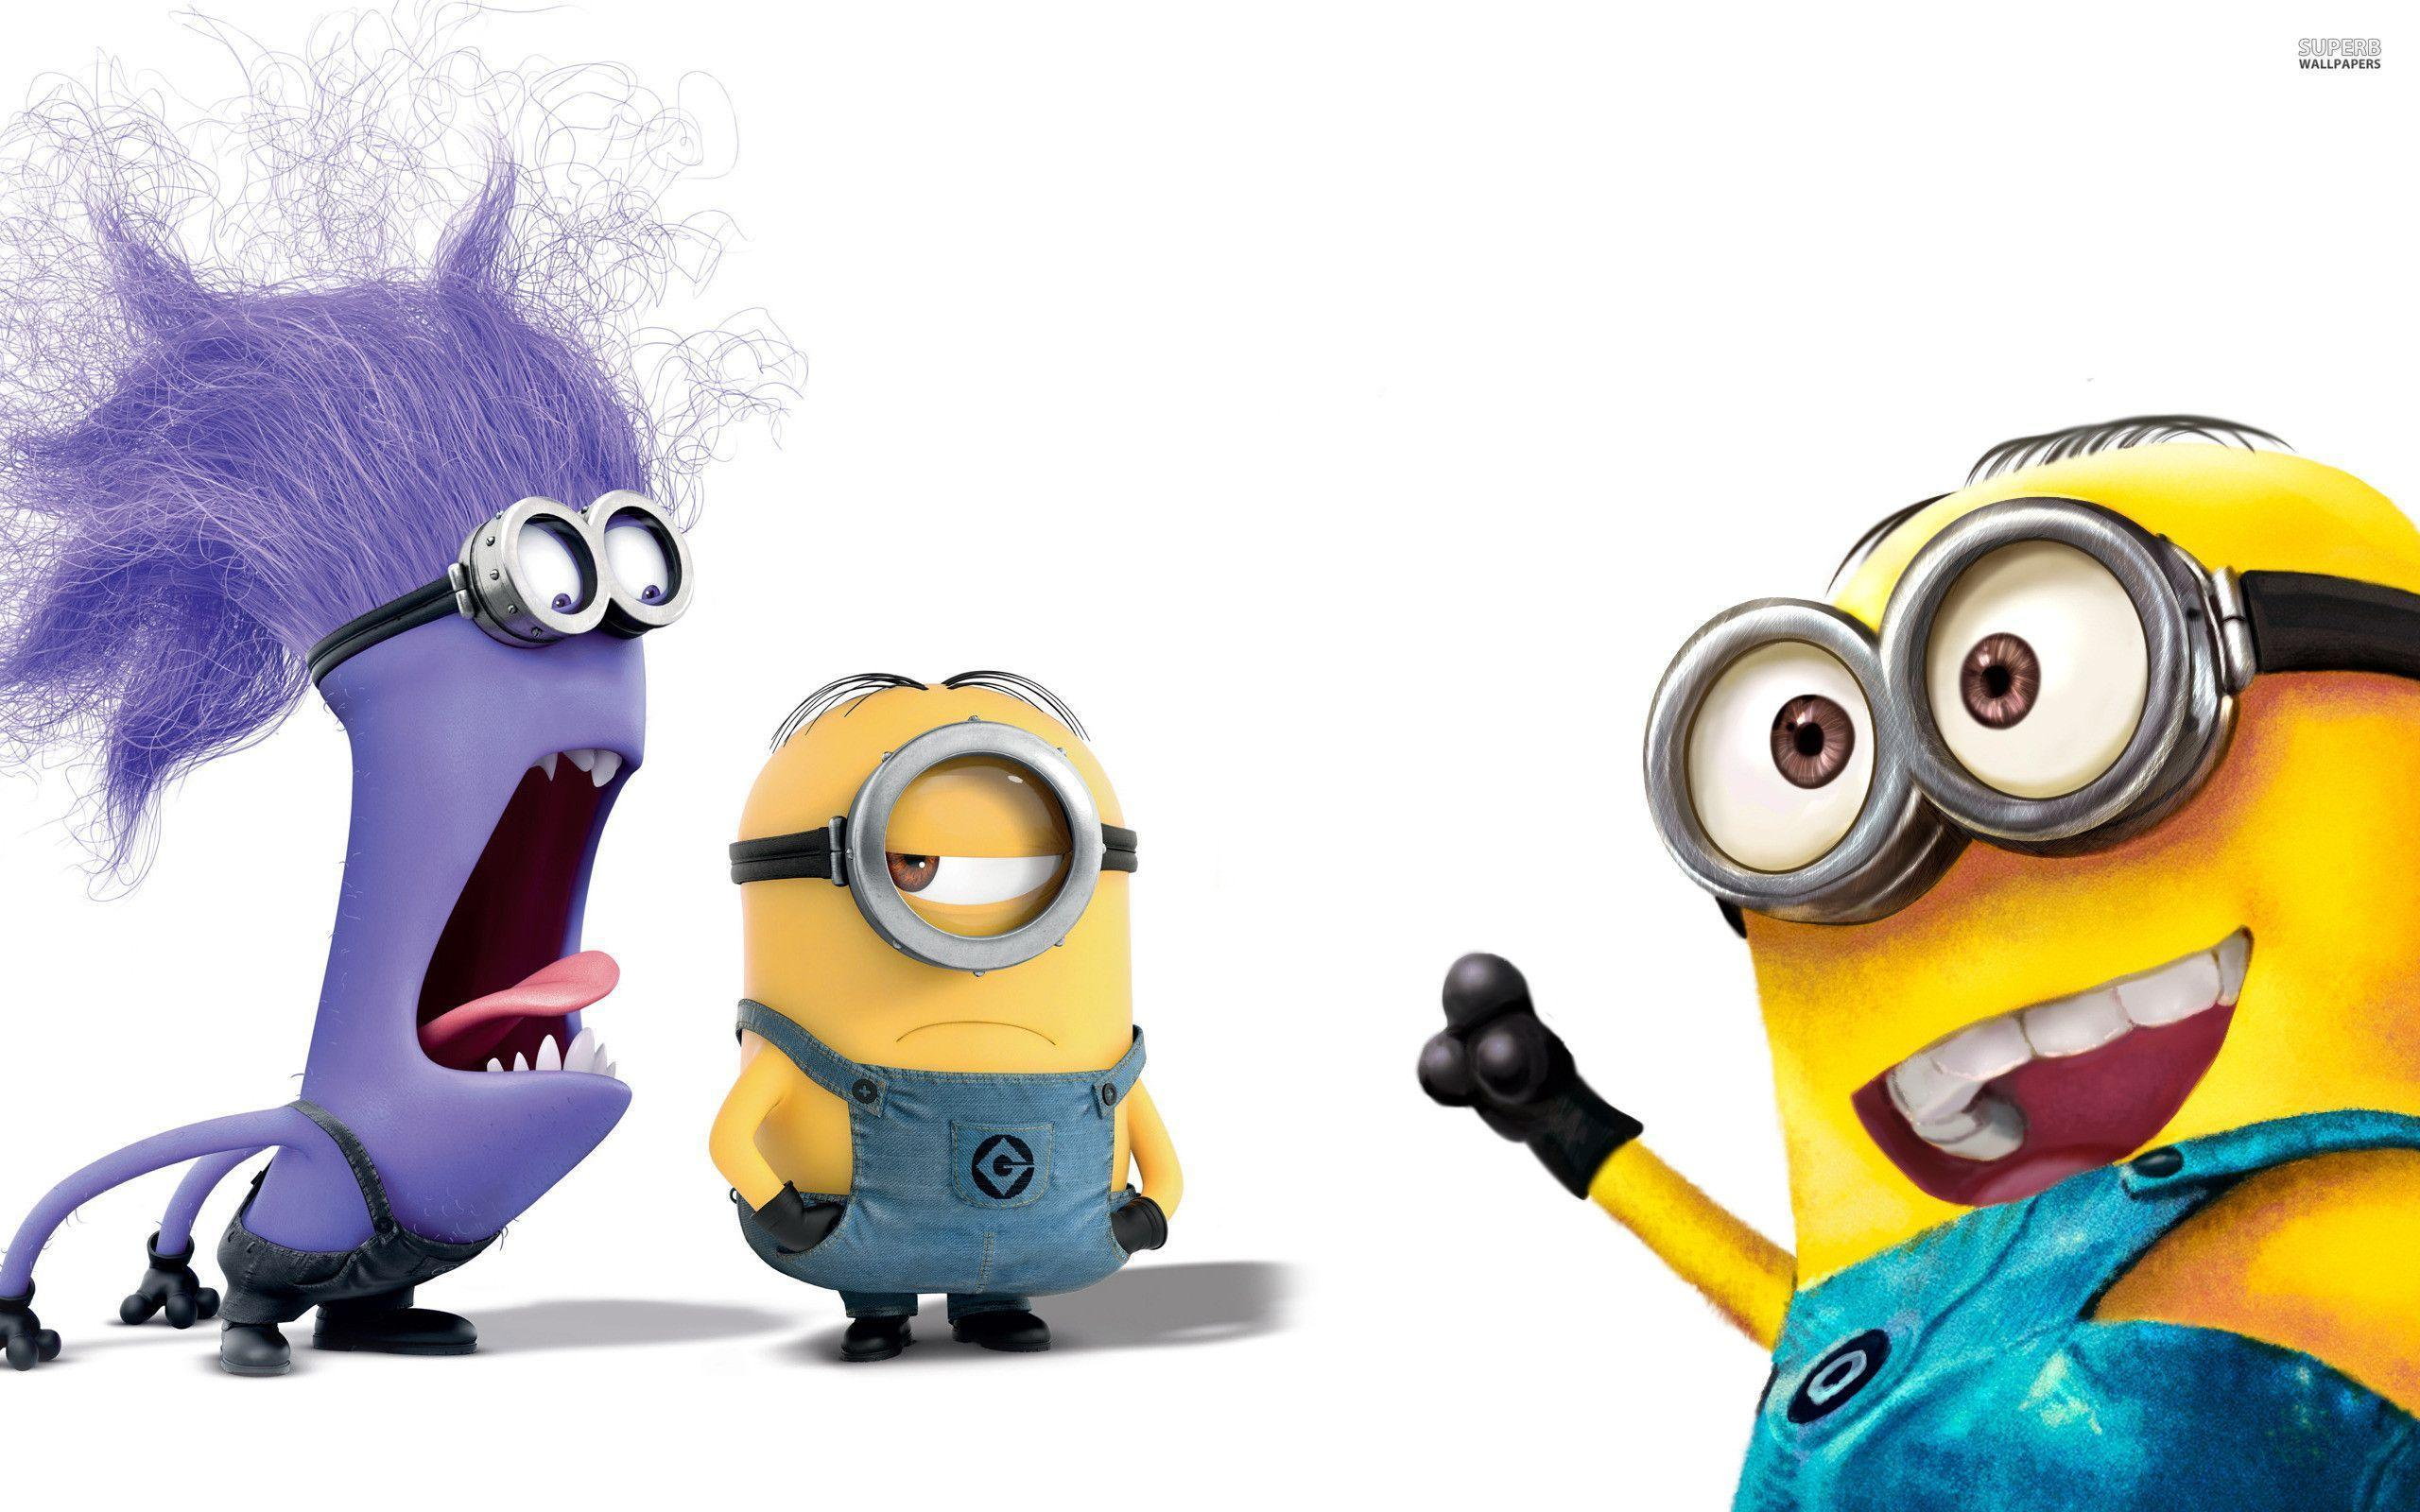 despicable me minions wallpapers - photo #2